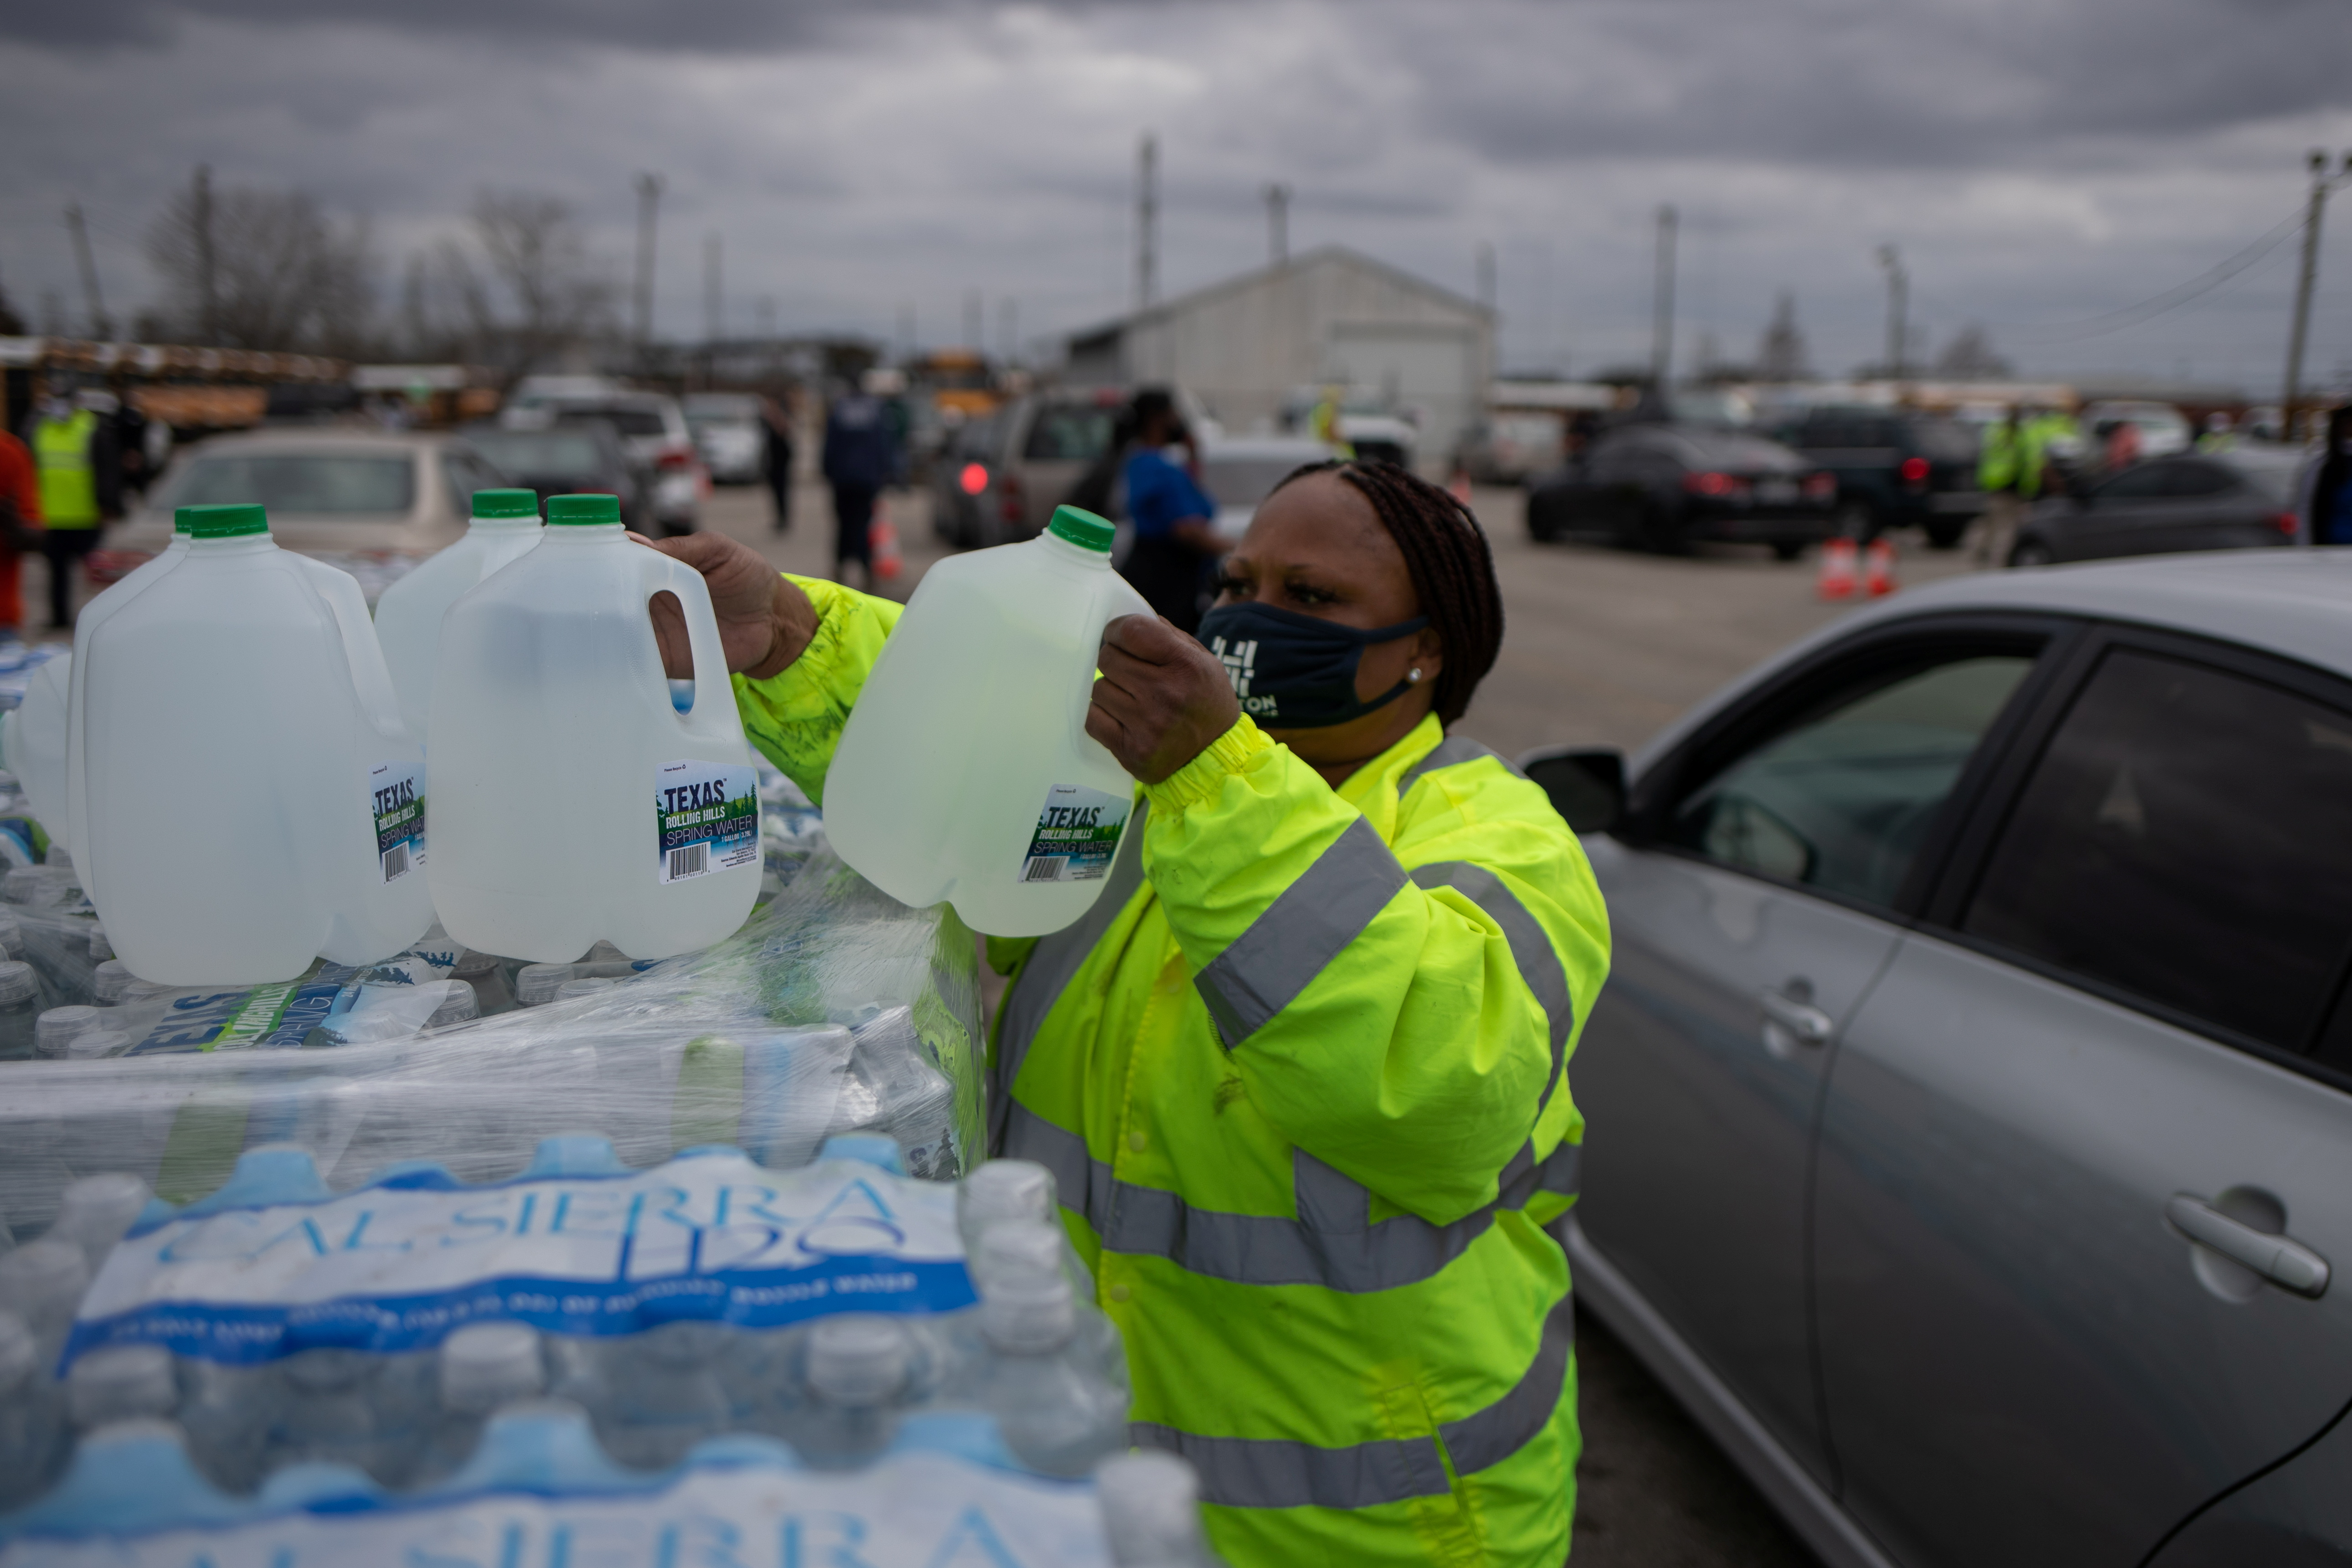 Volunteer Elizabeth Murray helps hand water to local residents at Butler Stadium after the city of Houston implemented a boil water advisory following an unprecedented winter storm in Houston, Texas, U.S., February 21, 2021. REUTERS/Adrees Latif